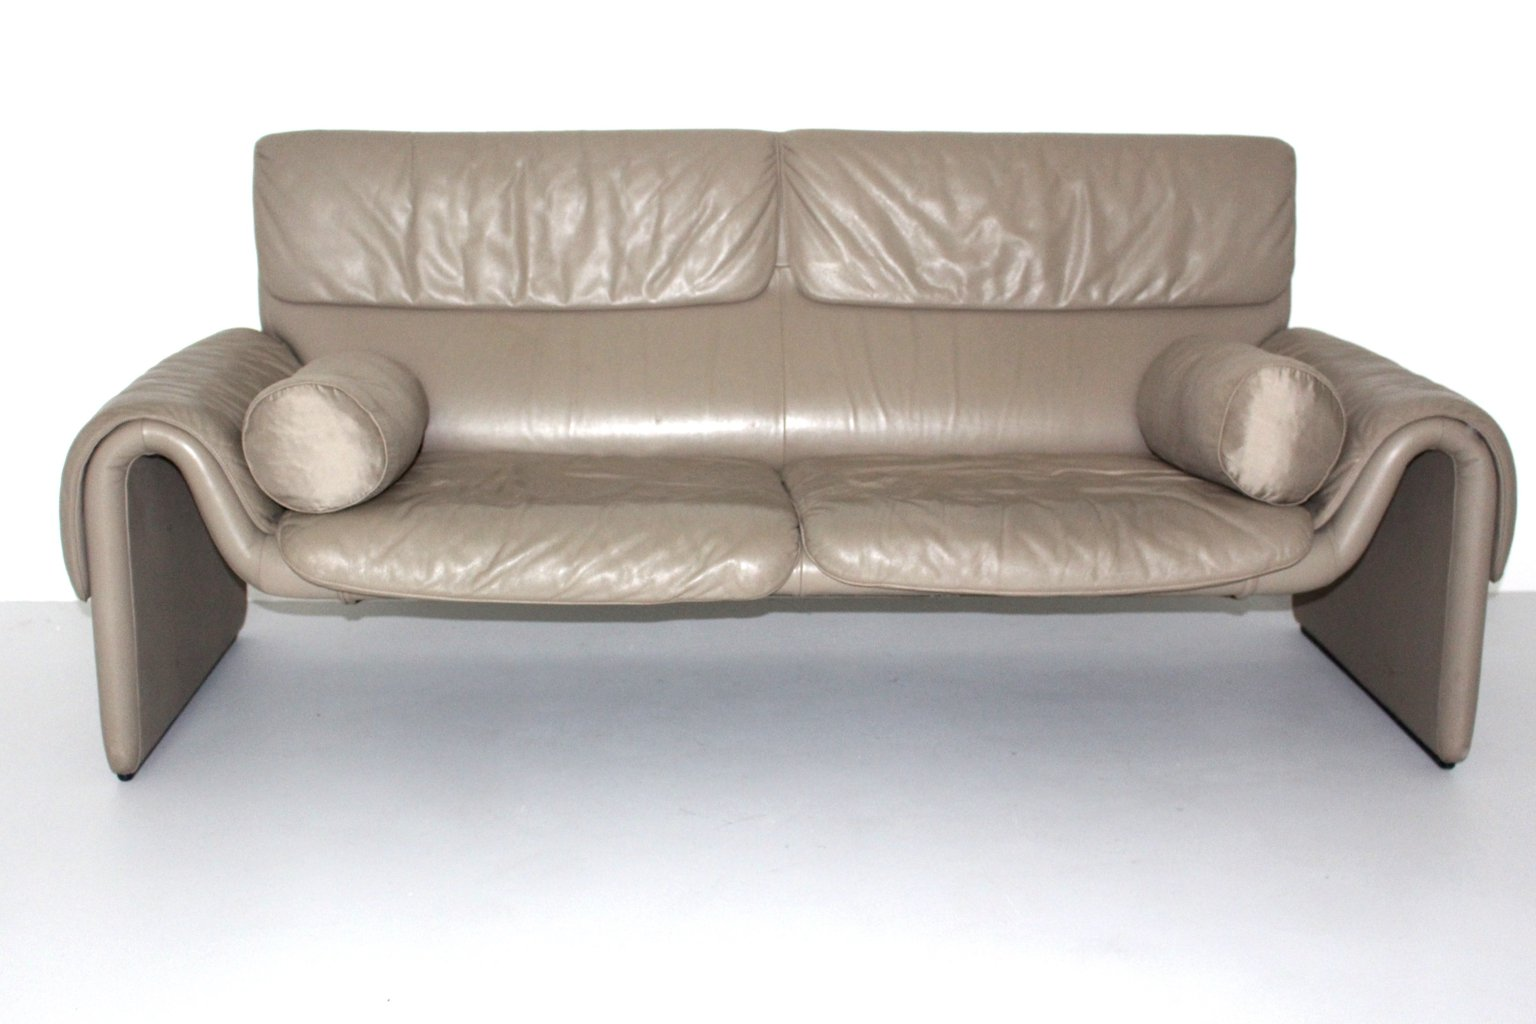 Vintage DS 2011 Leather Sofa From De Sede, 1980s